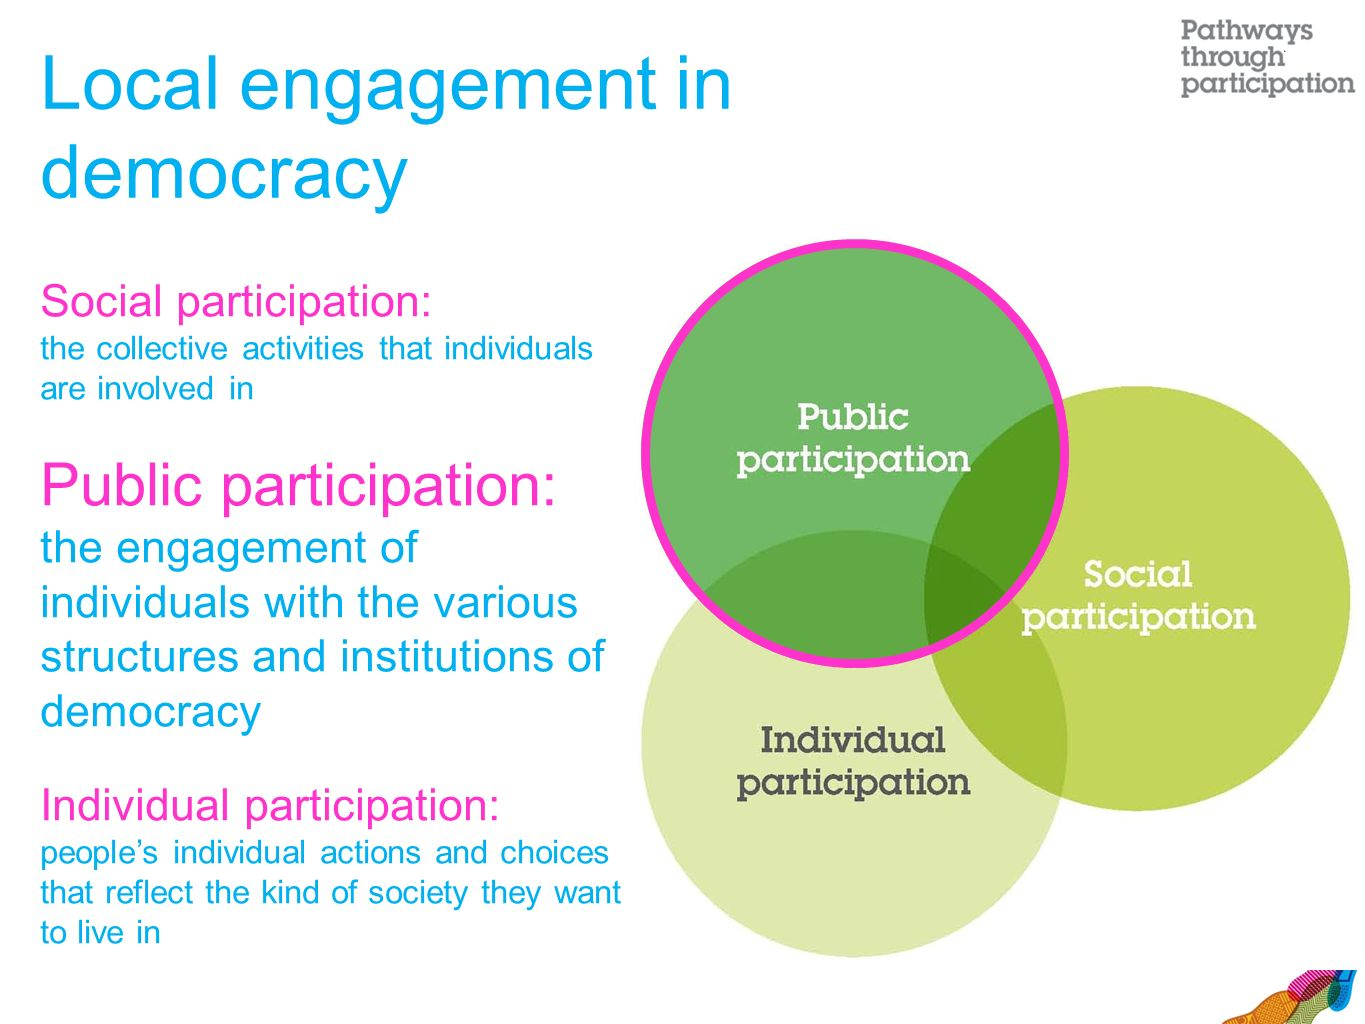 Local engagement in democracy Social participation: the collective activities that individuals are involved in Public participation: the engagement of individuals with the various structures and institutions of democracy Individual participation: people's individual actions and choices that reflect the kind of society they want to live in